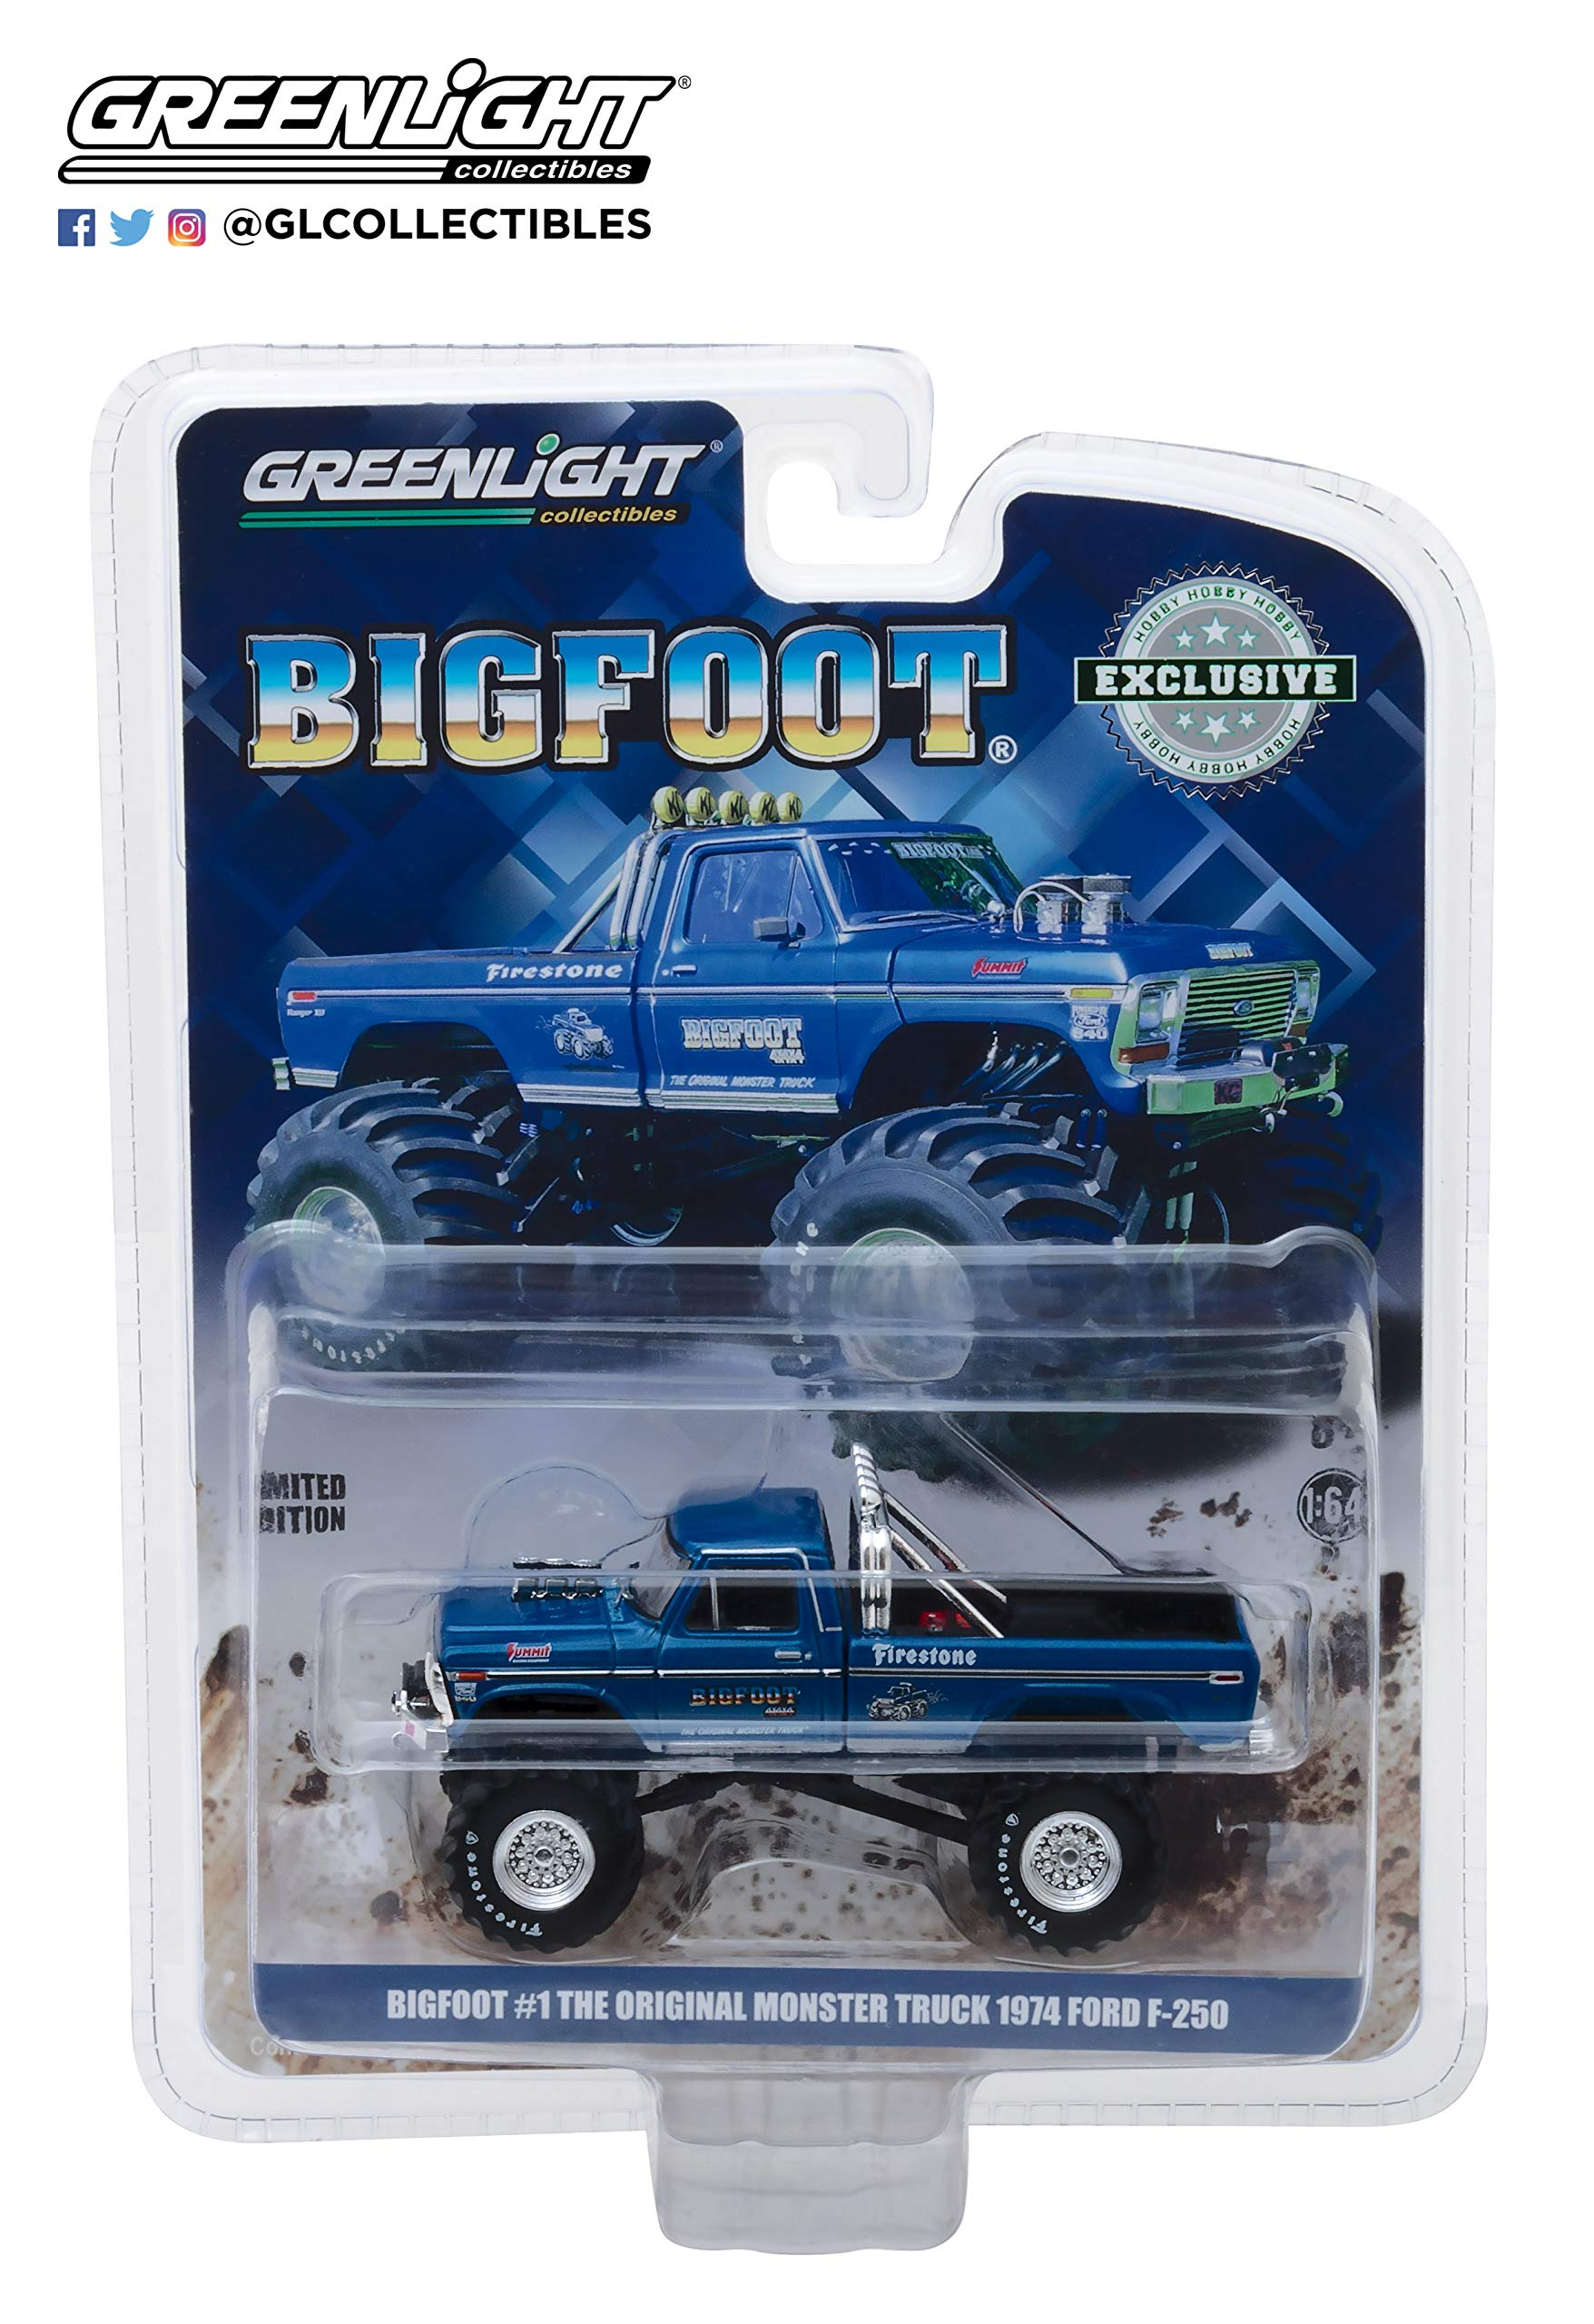 1974 Ford F-250 Monster Truck Bigfoot #1 Blue The Original Monster Truck (1979) Hobby Exclusive 1/64 Diecast Model Car by Greenlight 29934